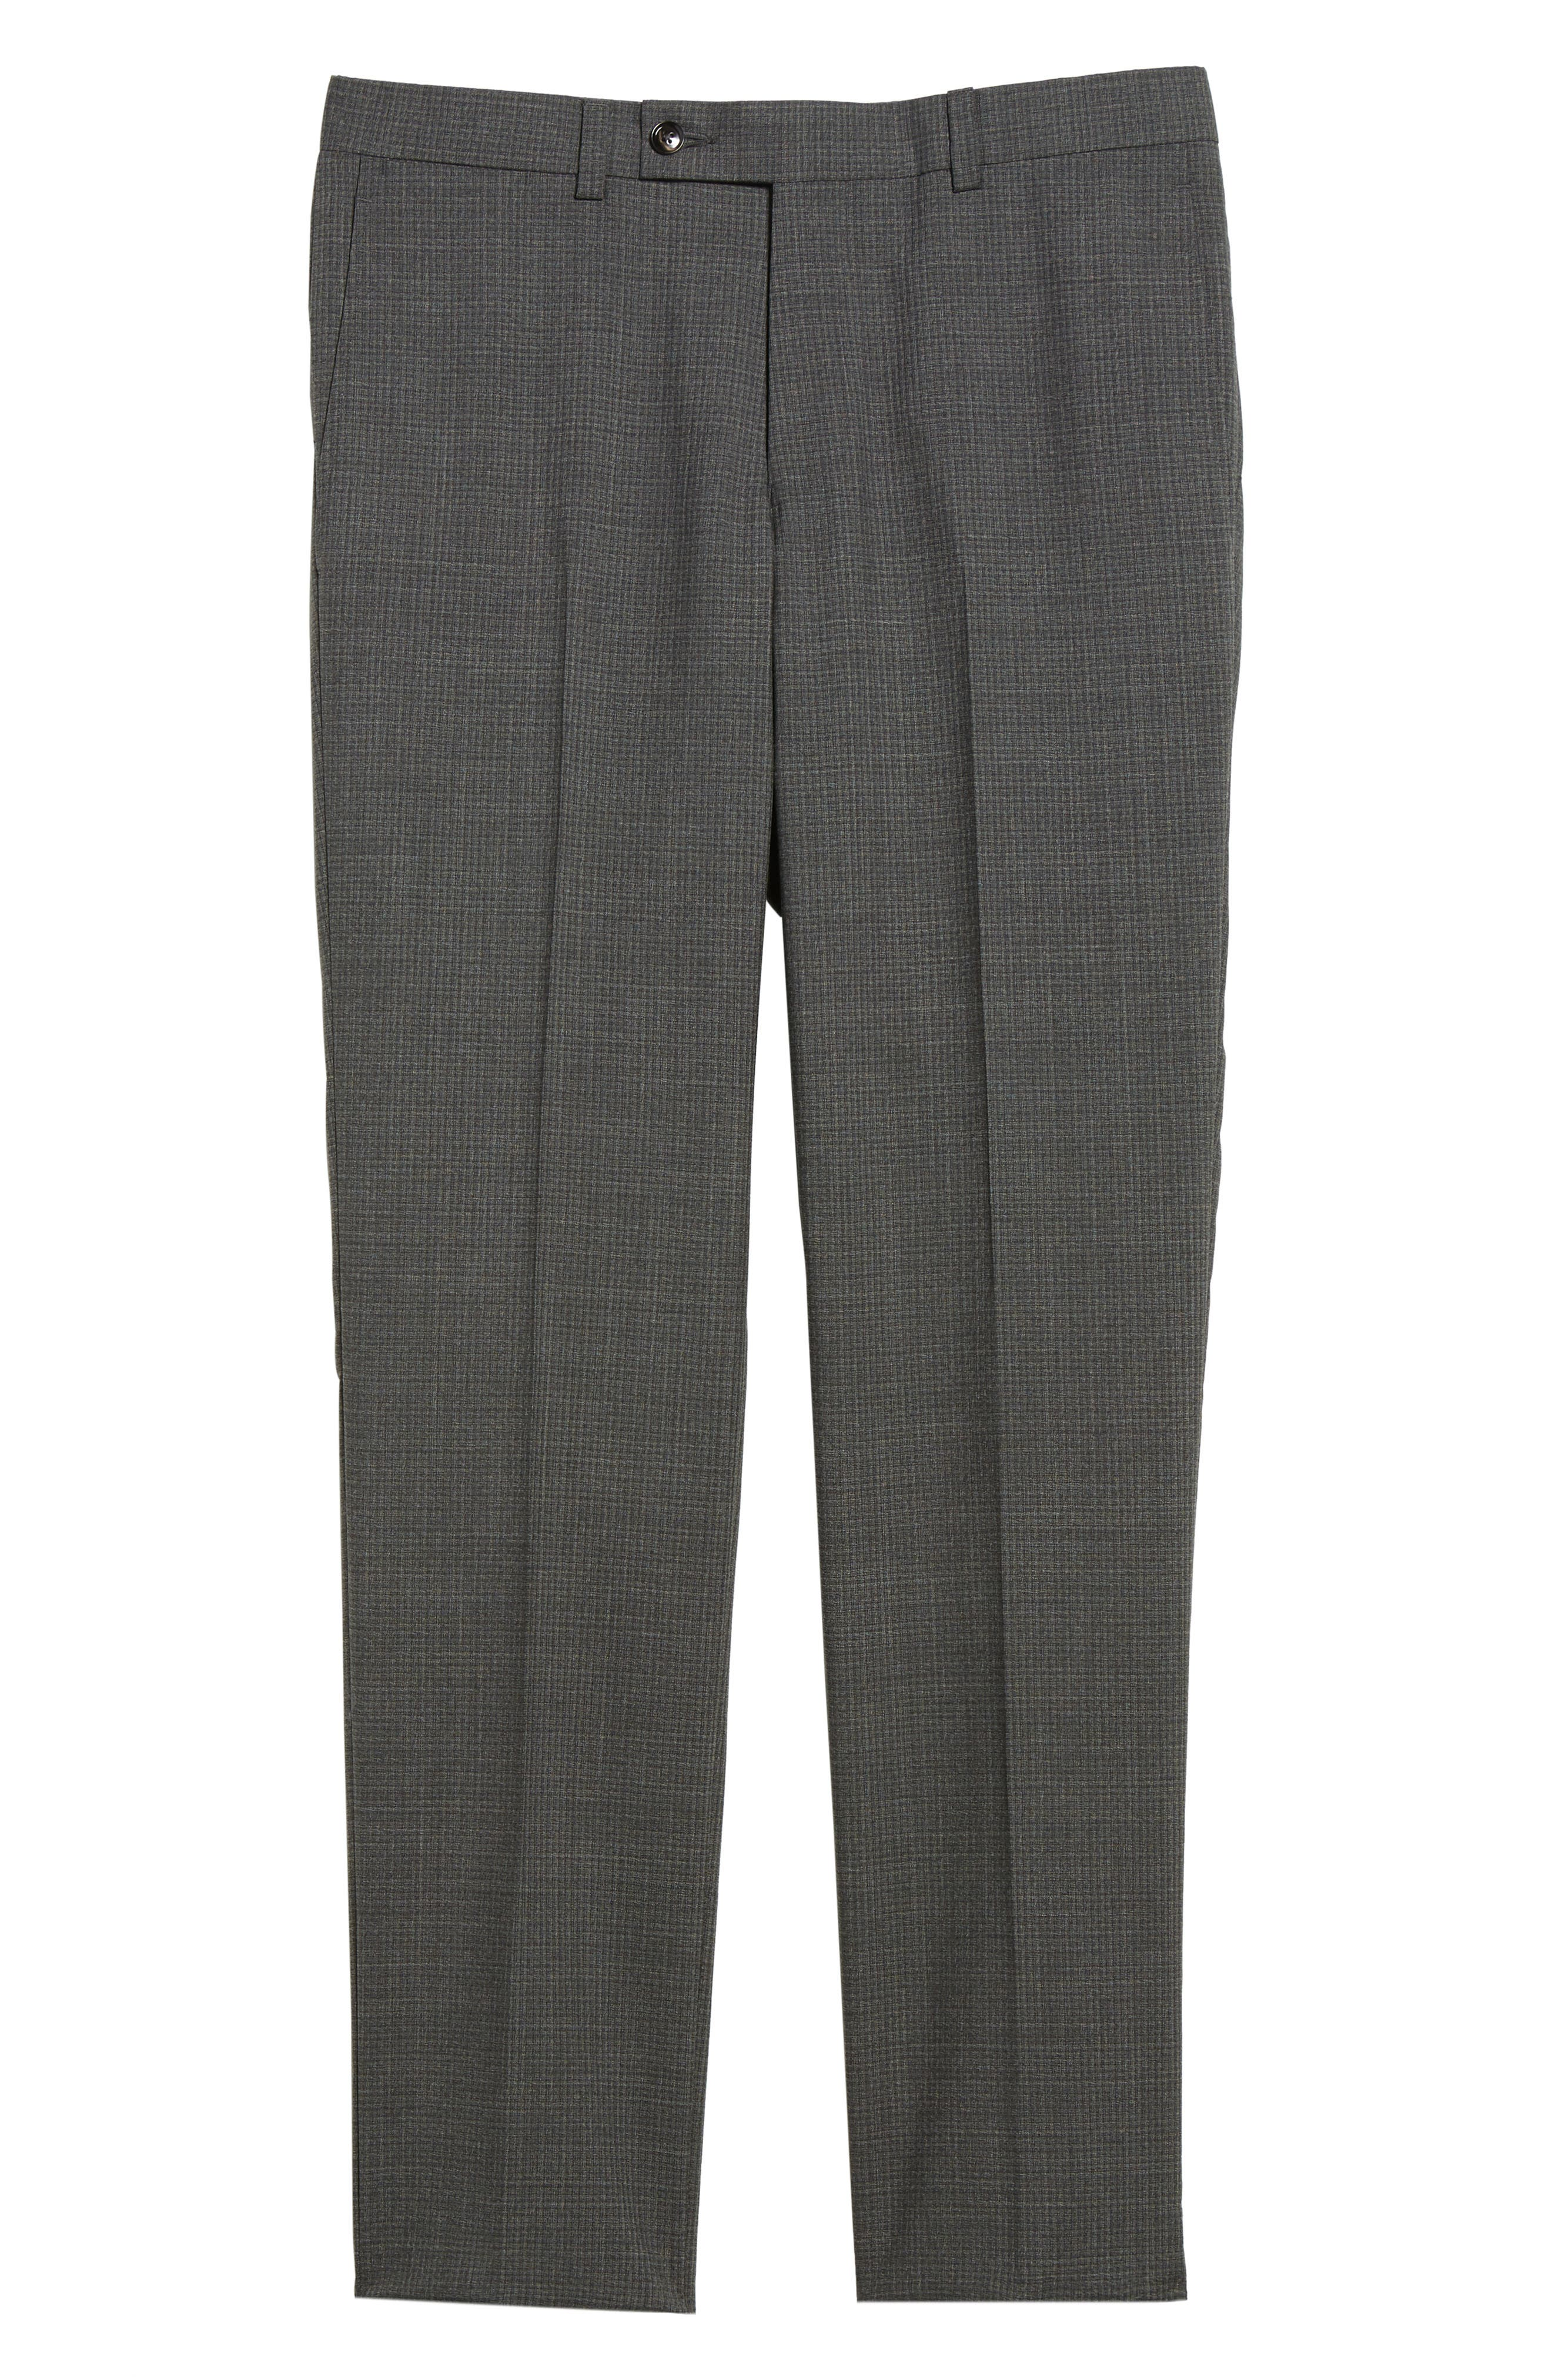 Flat Front Check Wool Trousers,                             Alternate thumbnail 6, color,                             020